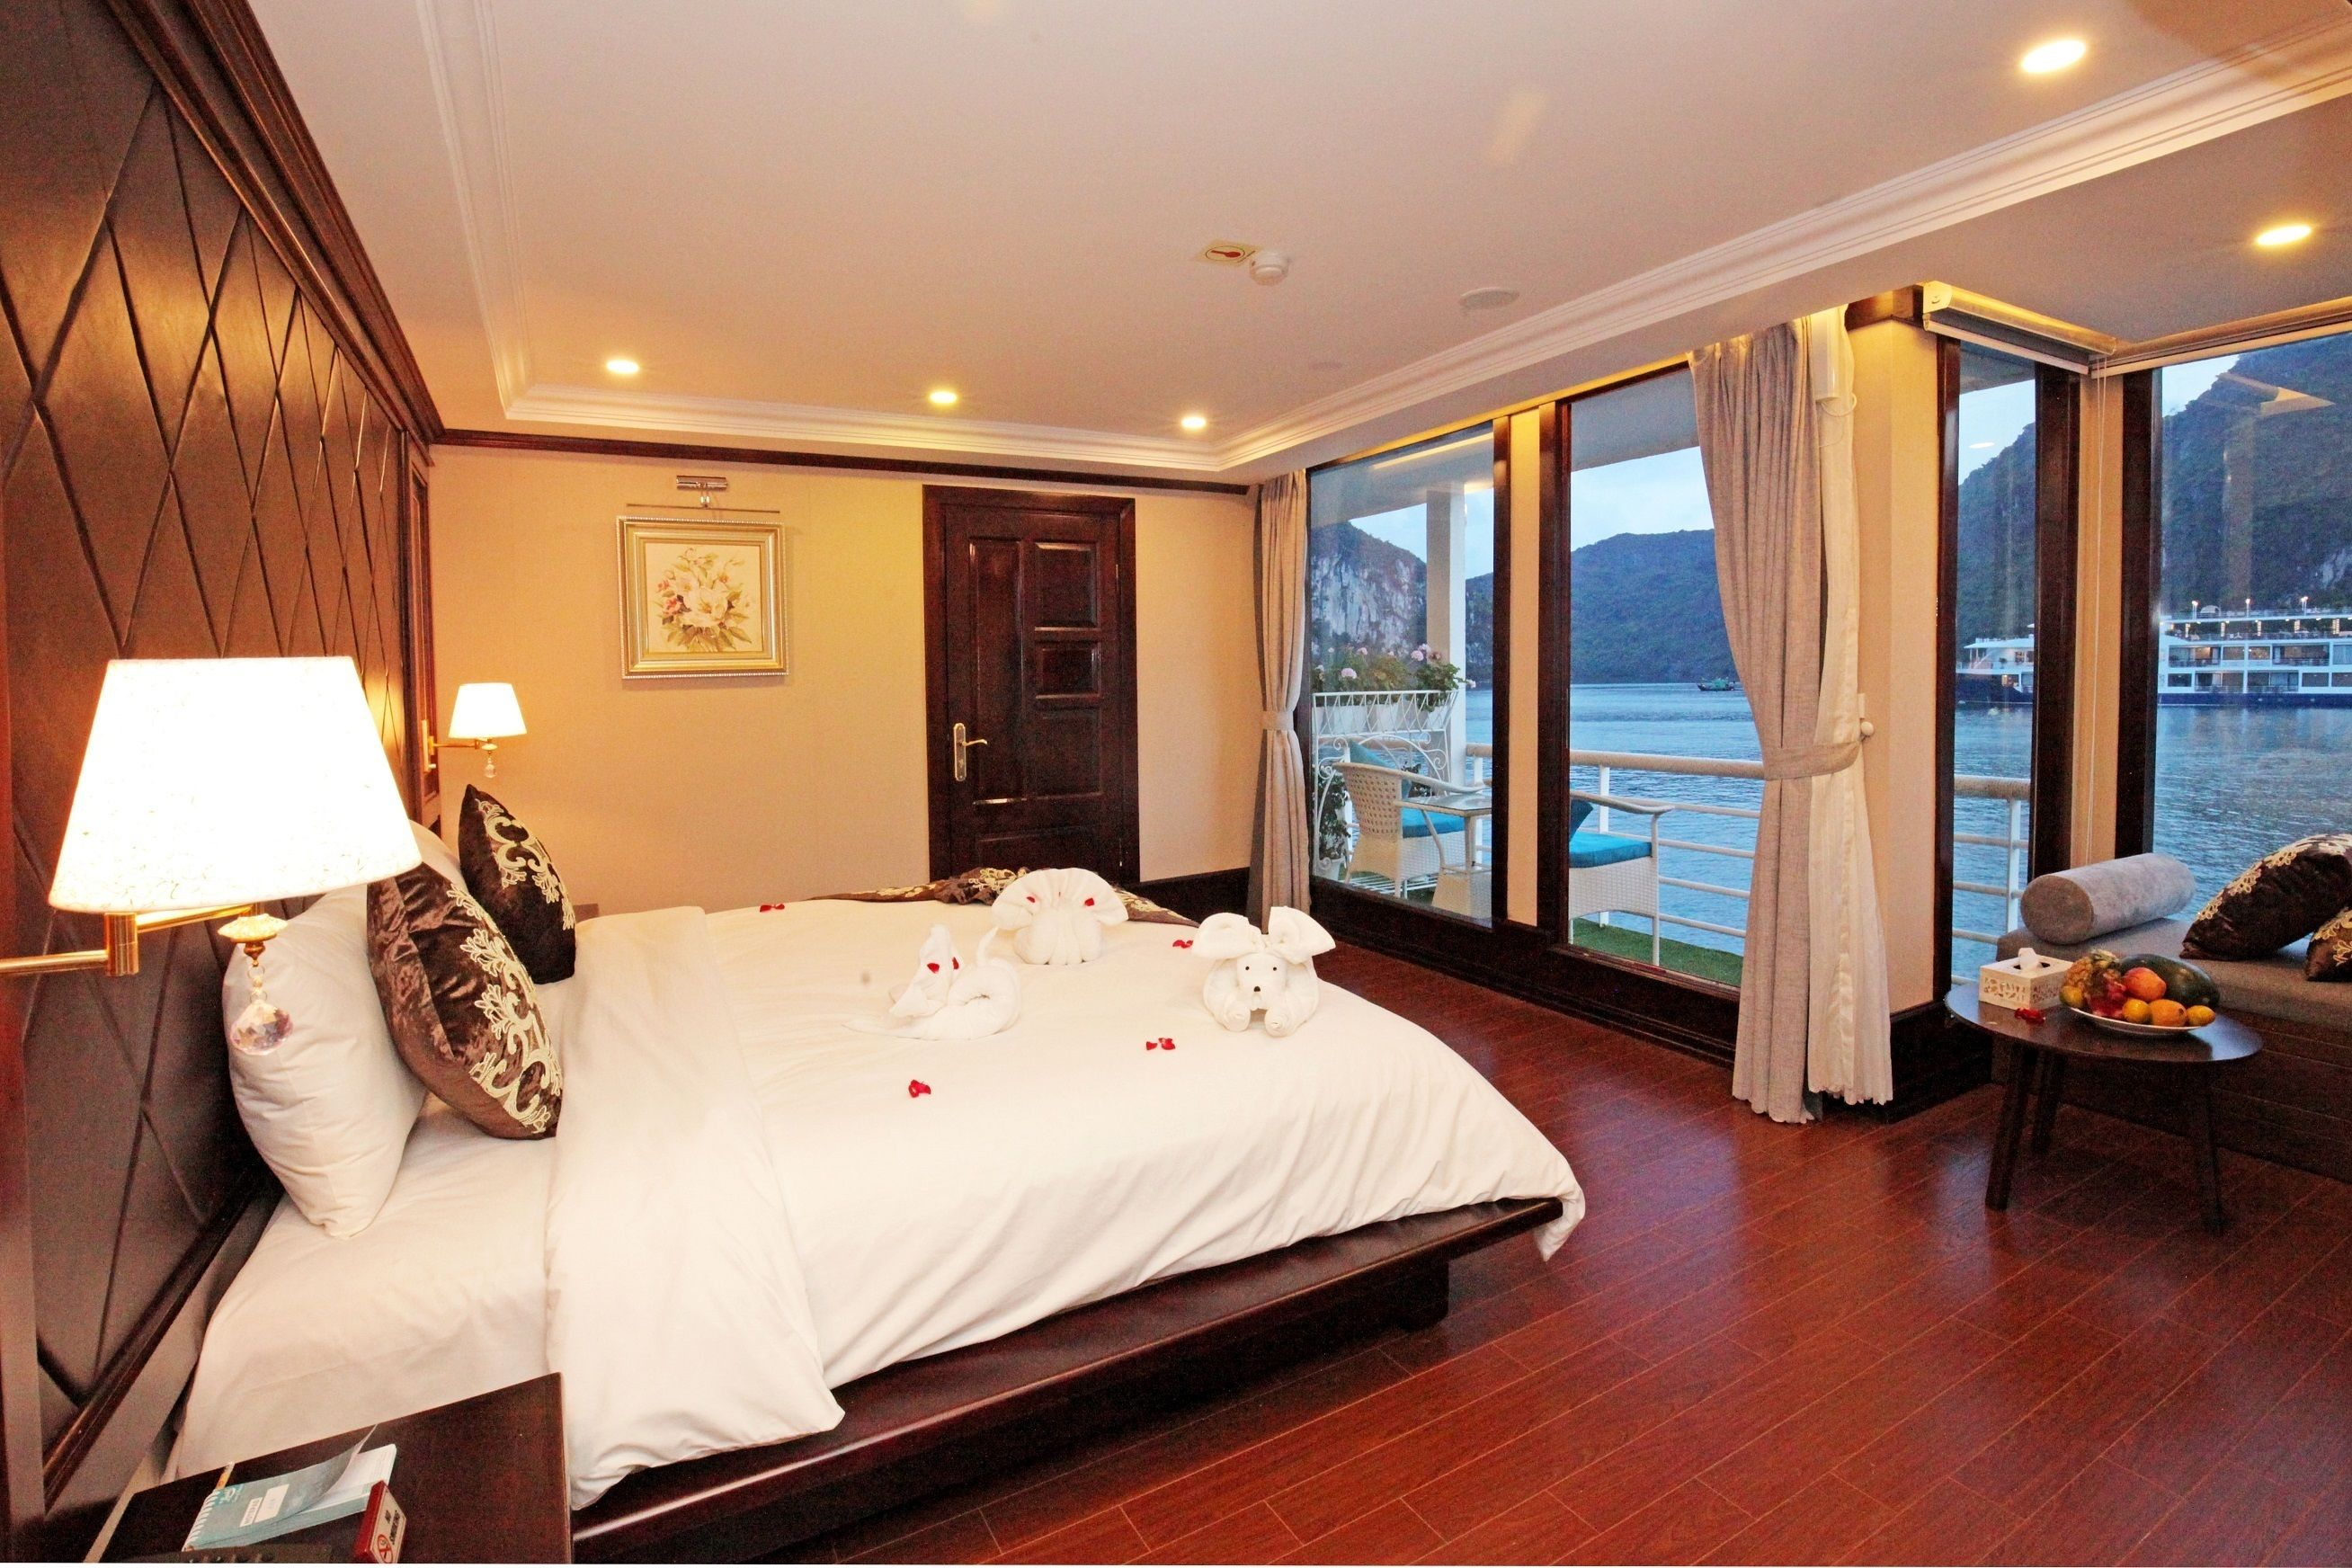 Room on a cruise ship in Vietnam